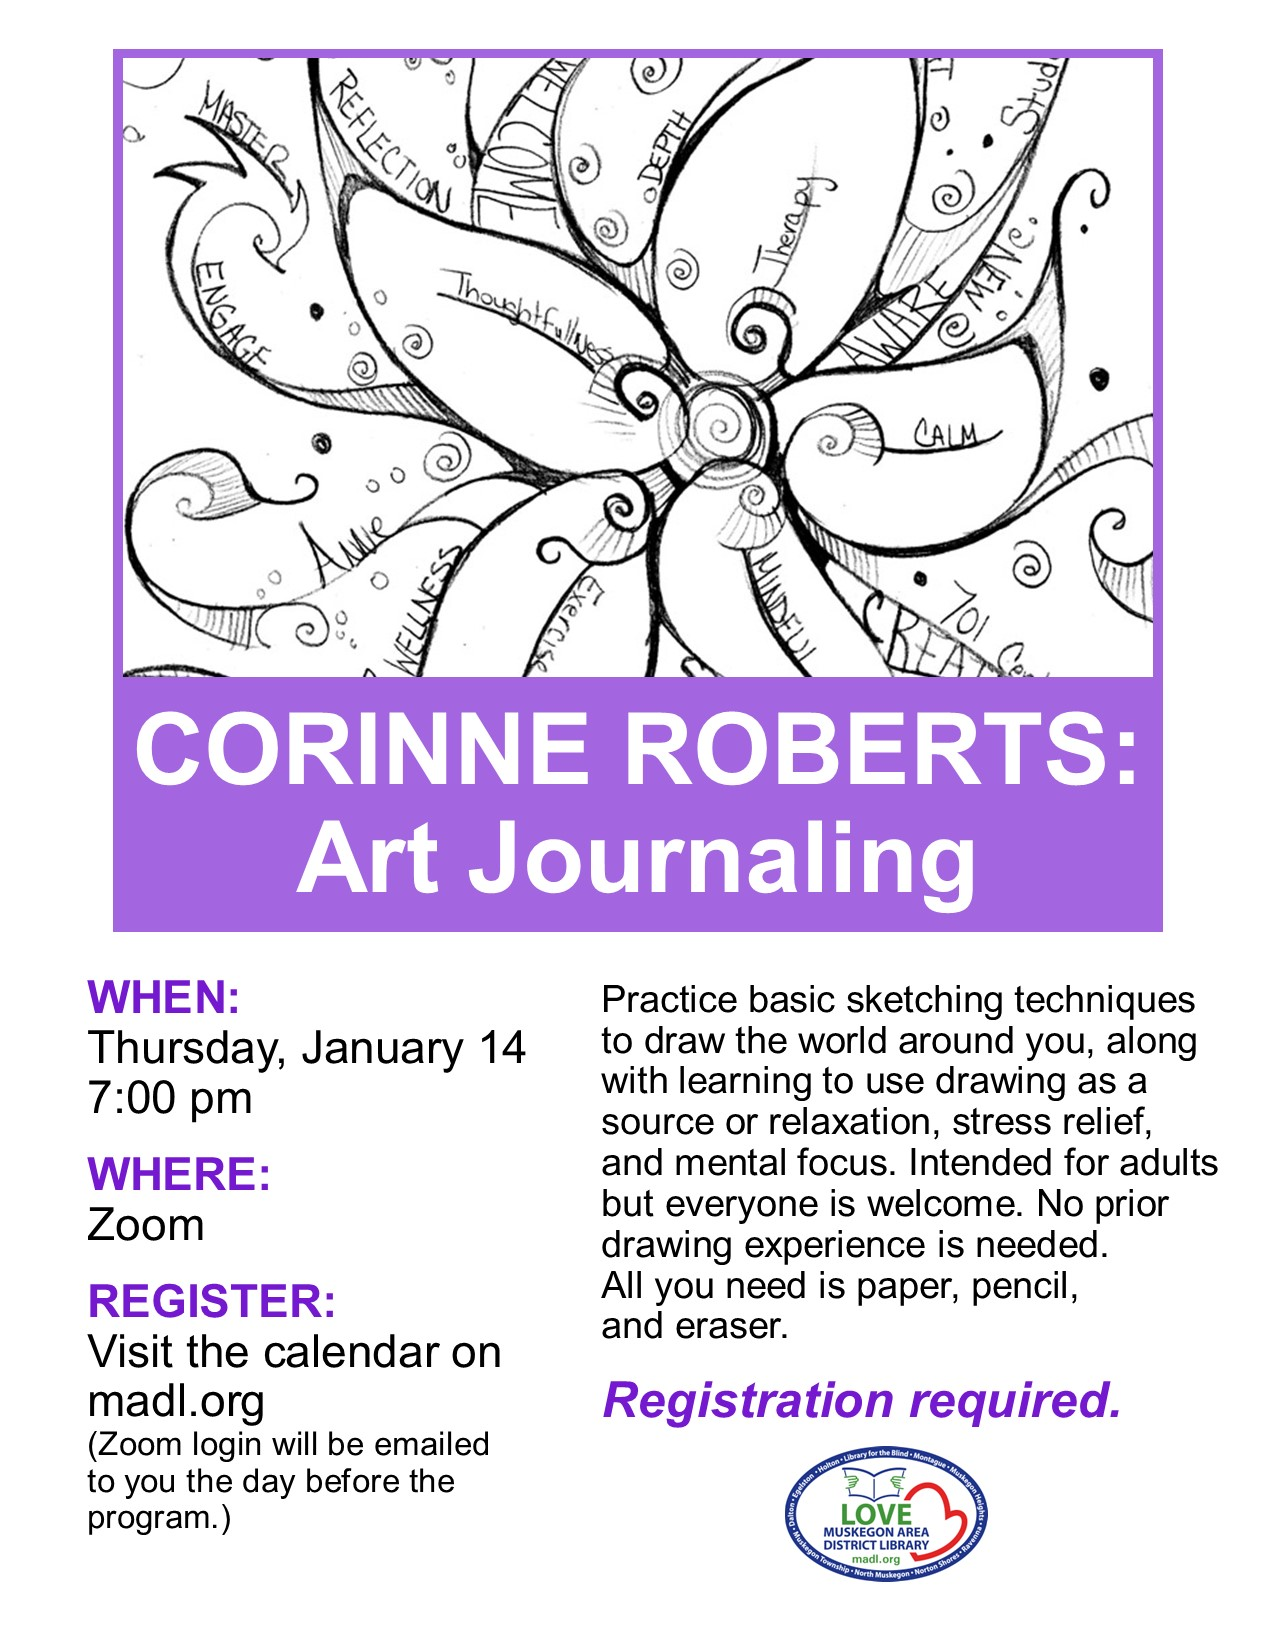 Black and white drawing of a flower with large petals. The caption reads Corinne Roberts: Art Journaling